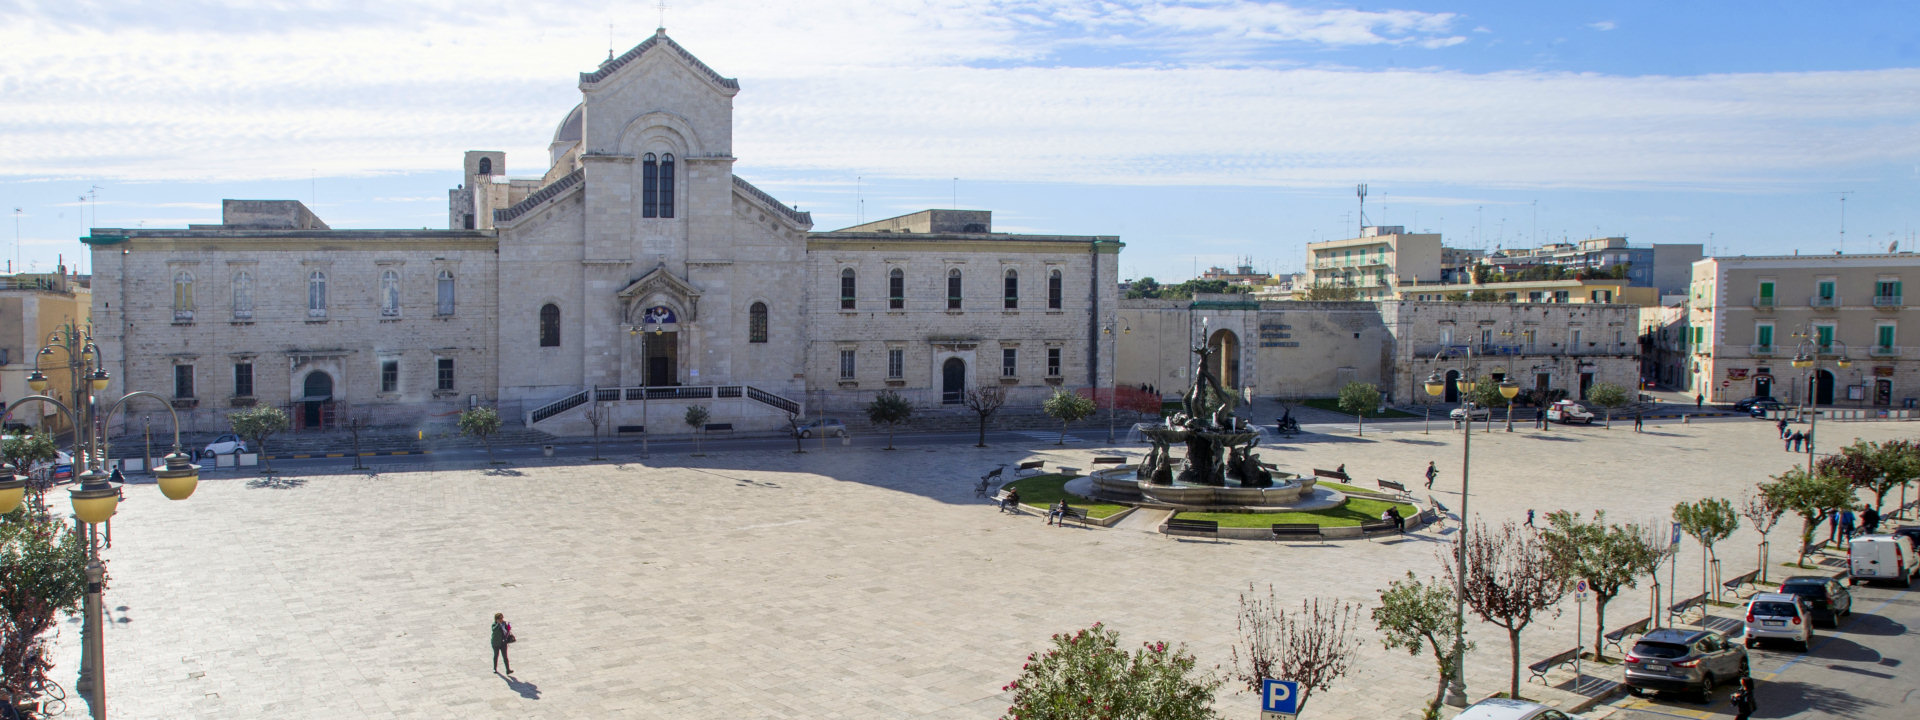 The Mayor of Giovinazzo, will drink coffee at the home of a citizen every Thursday